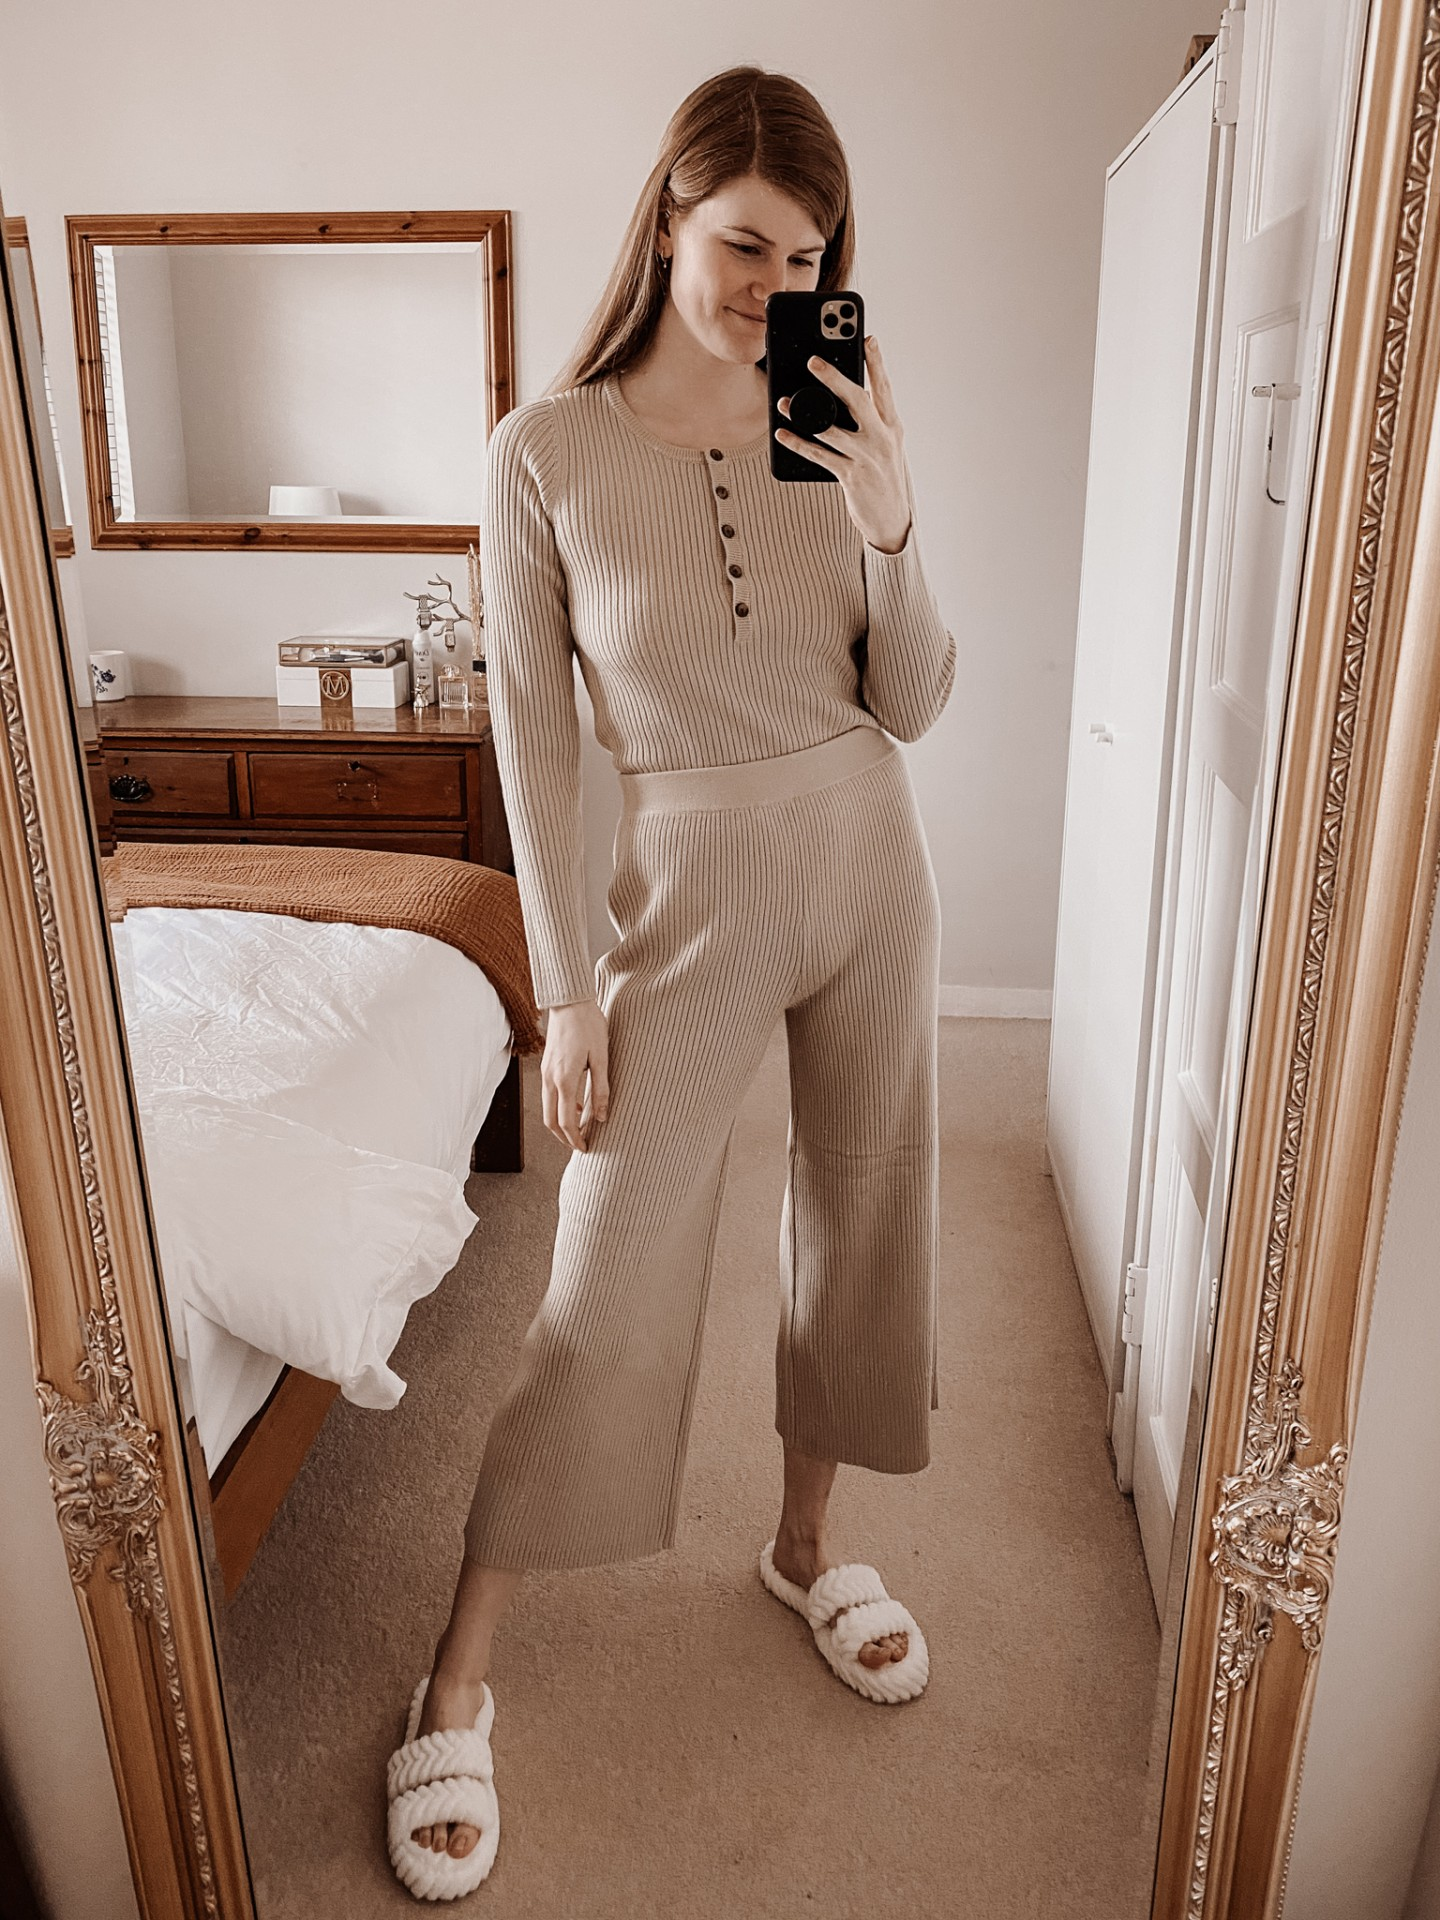 Lifestyle blogger Mollie Moore shares her favorite loungewear